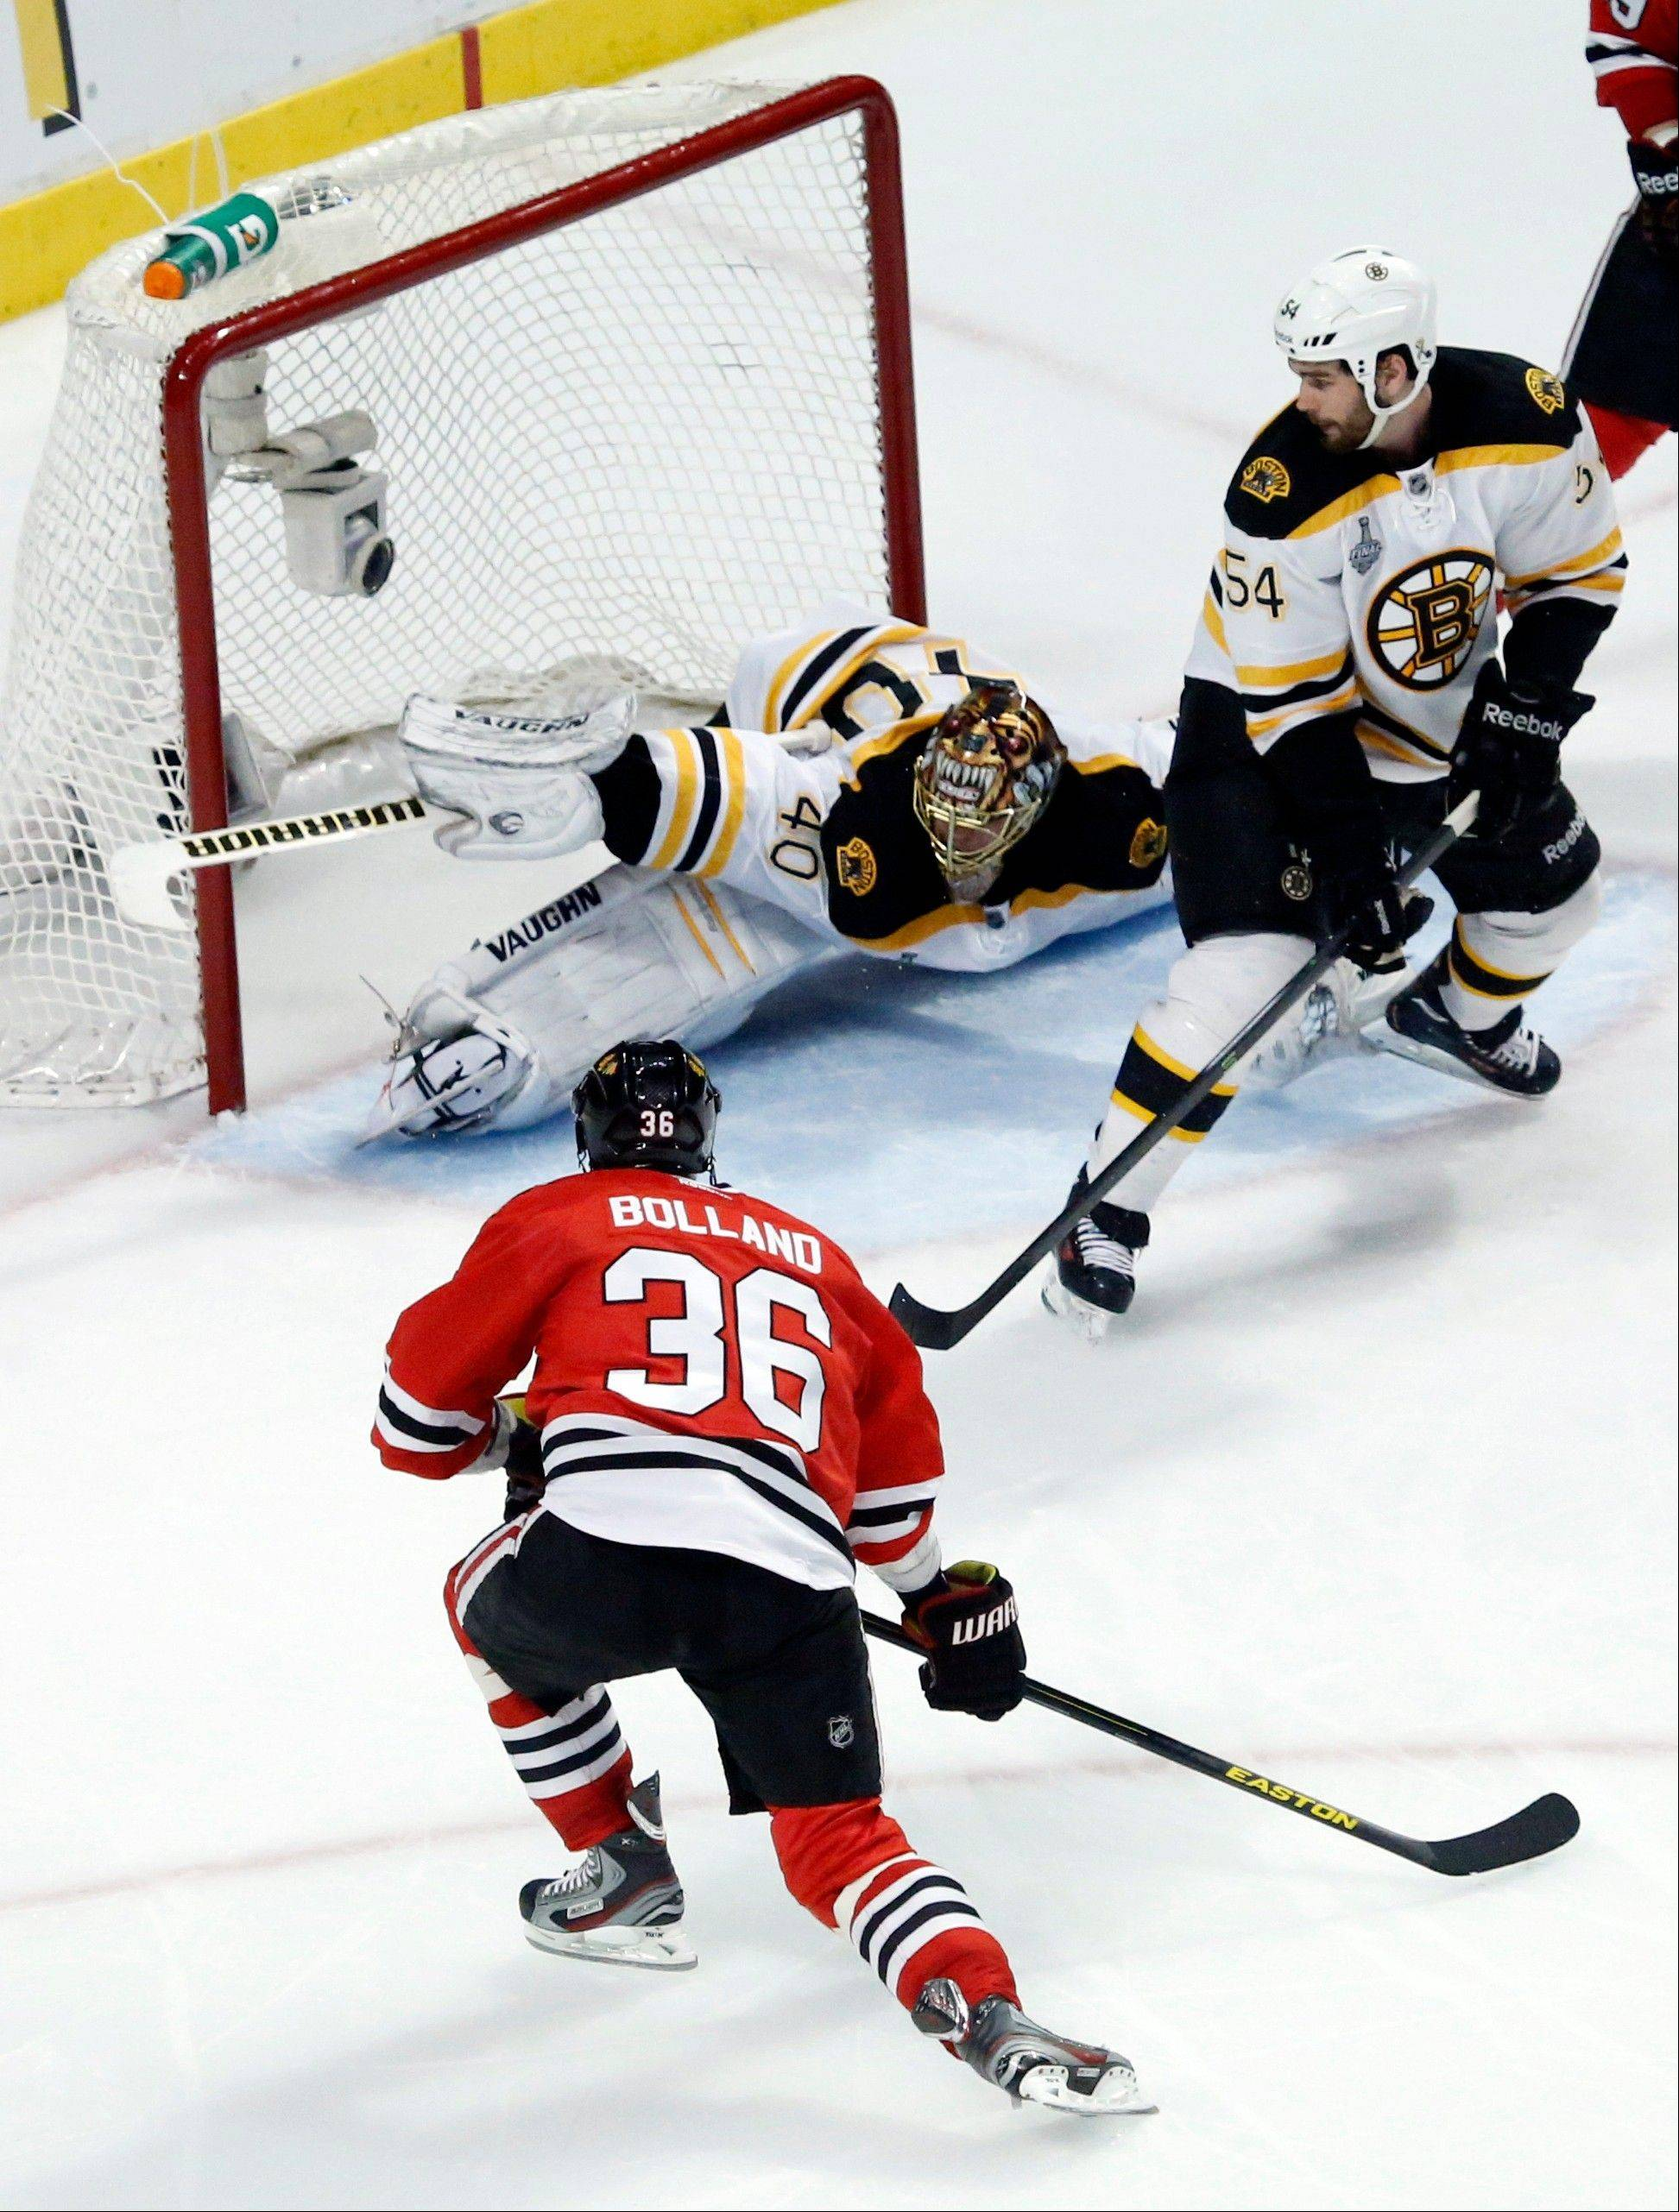 Chicago Blackhawks center Dave Bolland (36) scores a goal against Boston Bruins goalie Tuukka Rask (40) during the third period of Game 1 in their NHL Stanley Cup Final hockey series on Wednesday, June 12, 2013, in Chicago.